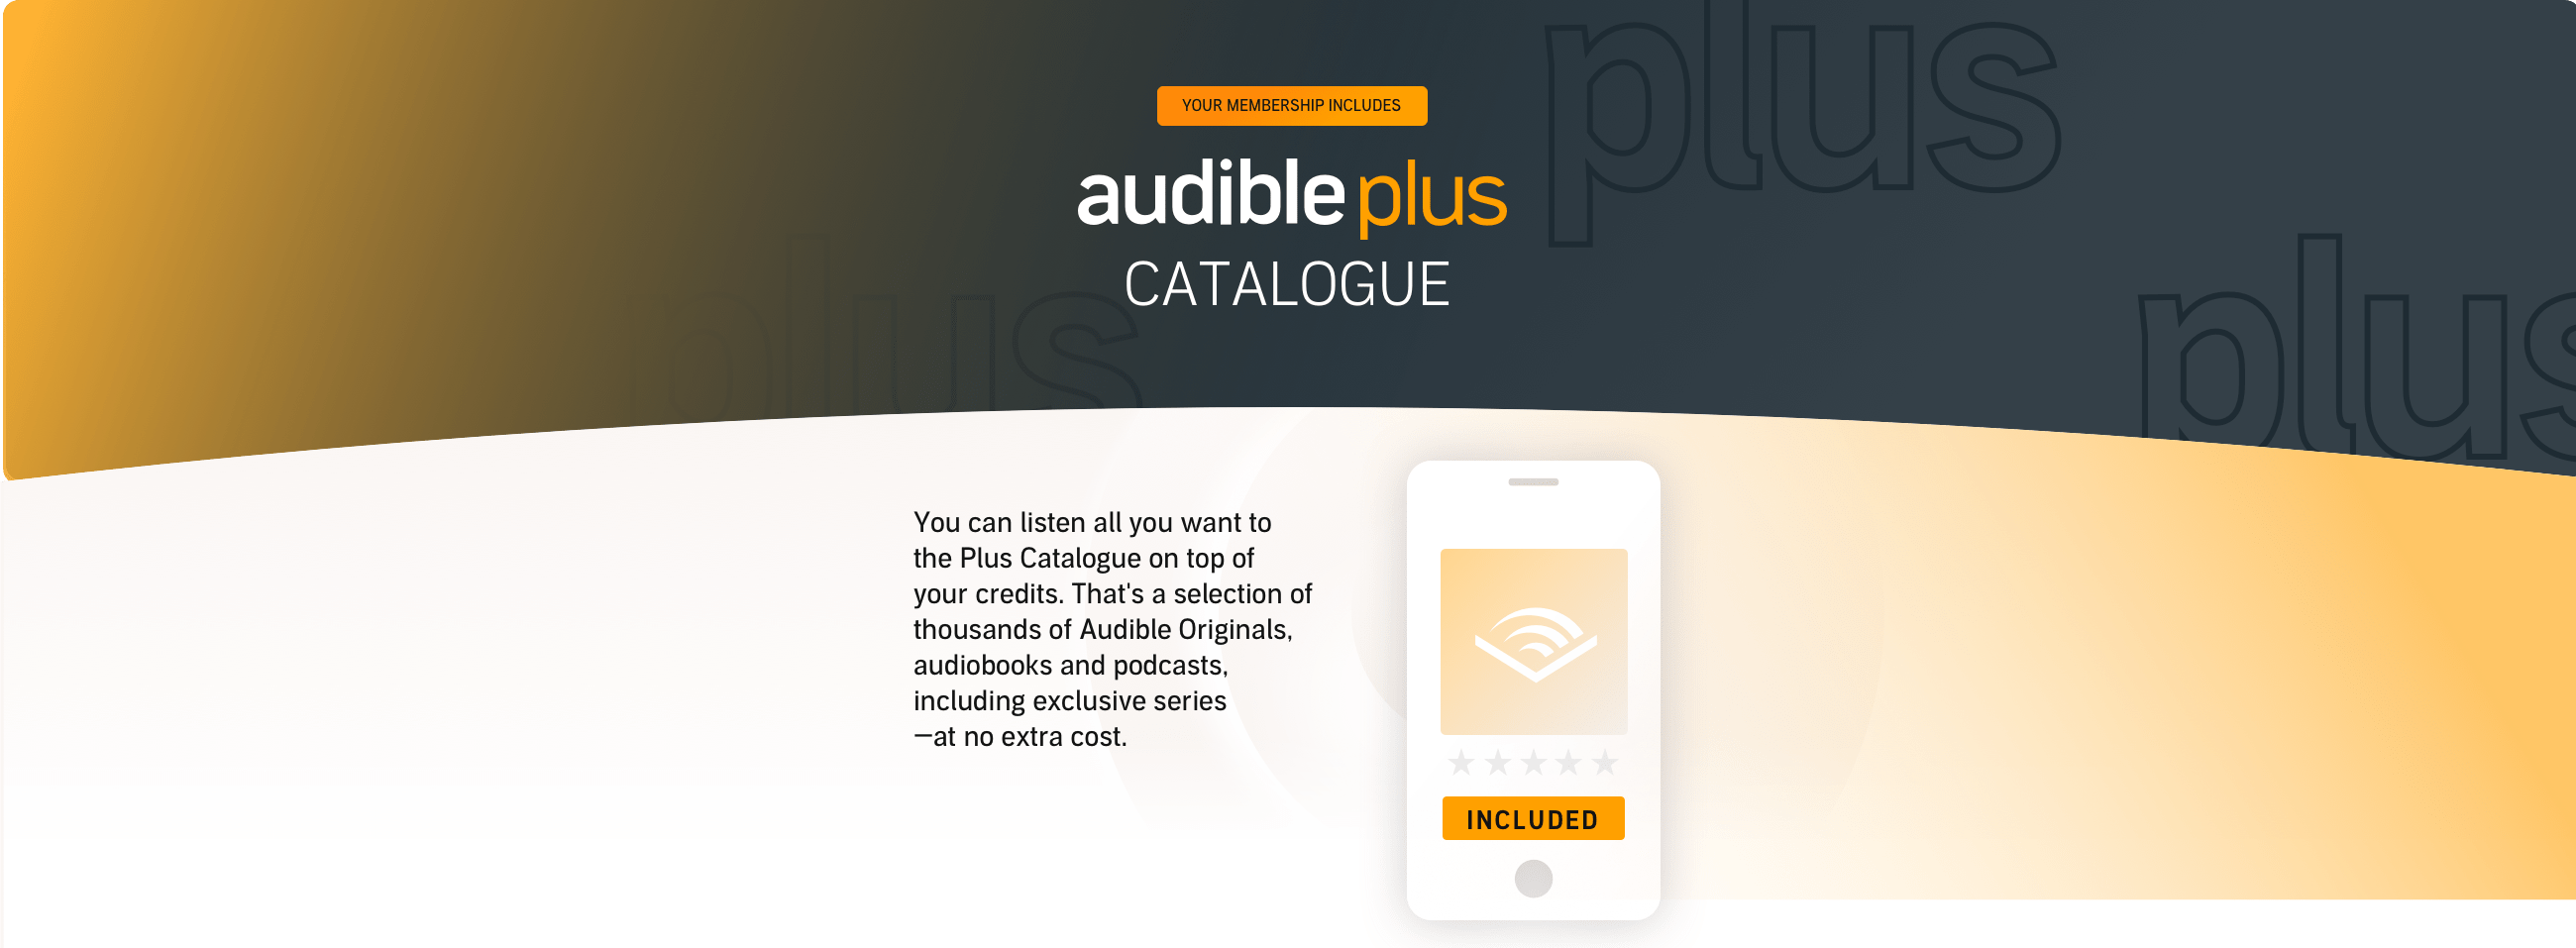 You can listen all you want to the Plus Catalogue on top of your credits. That's thousands of audiobooks, podcasts and Originals - at no extra cost.